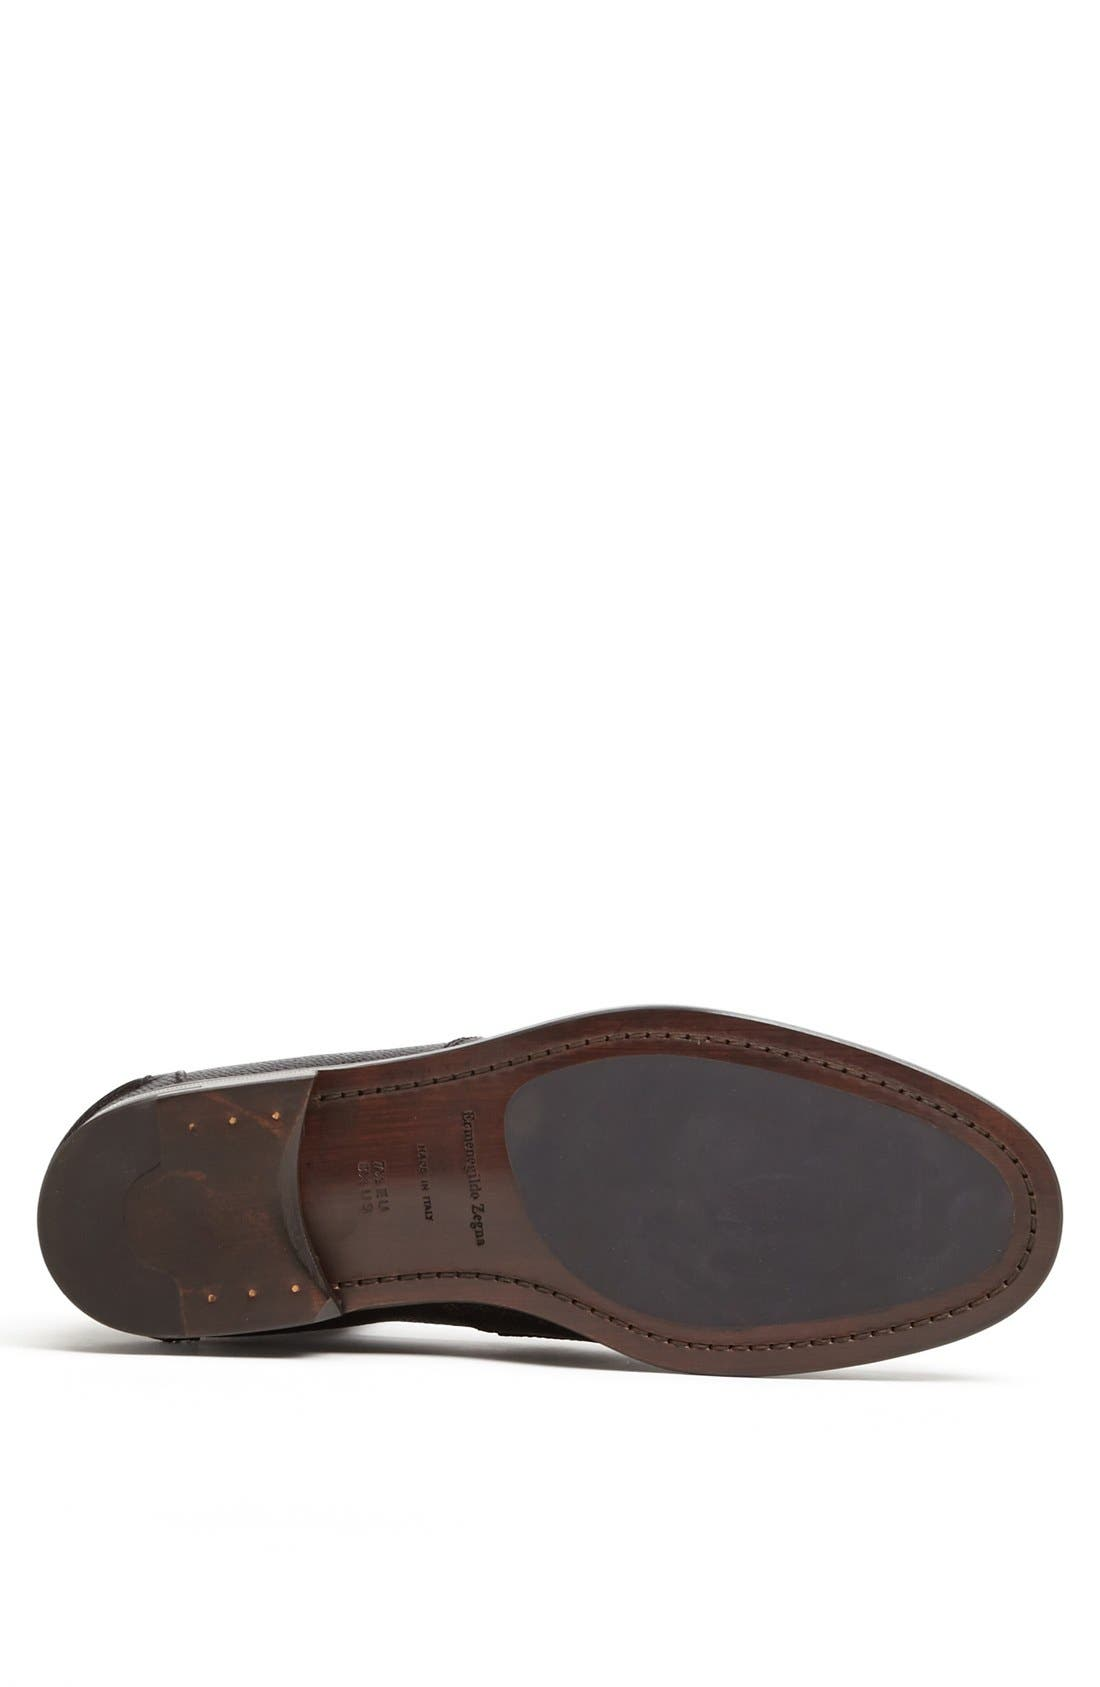 Alternate Image 4  - Ermenegildo Zegna 'College' Penny Loafer